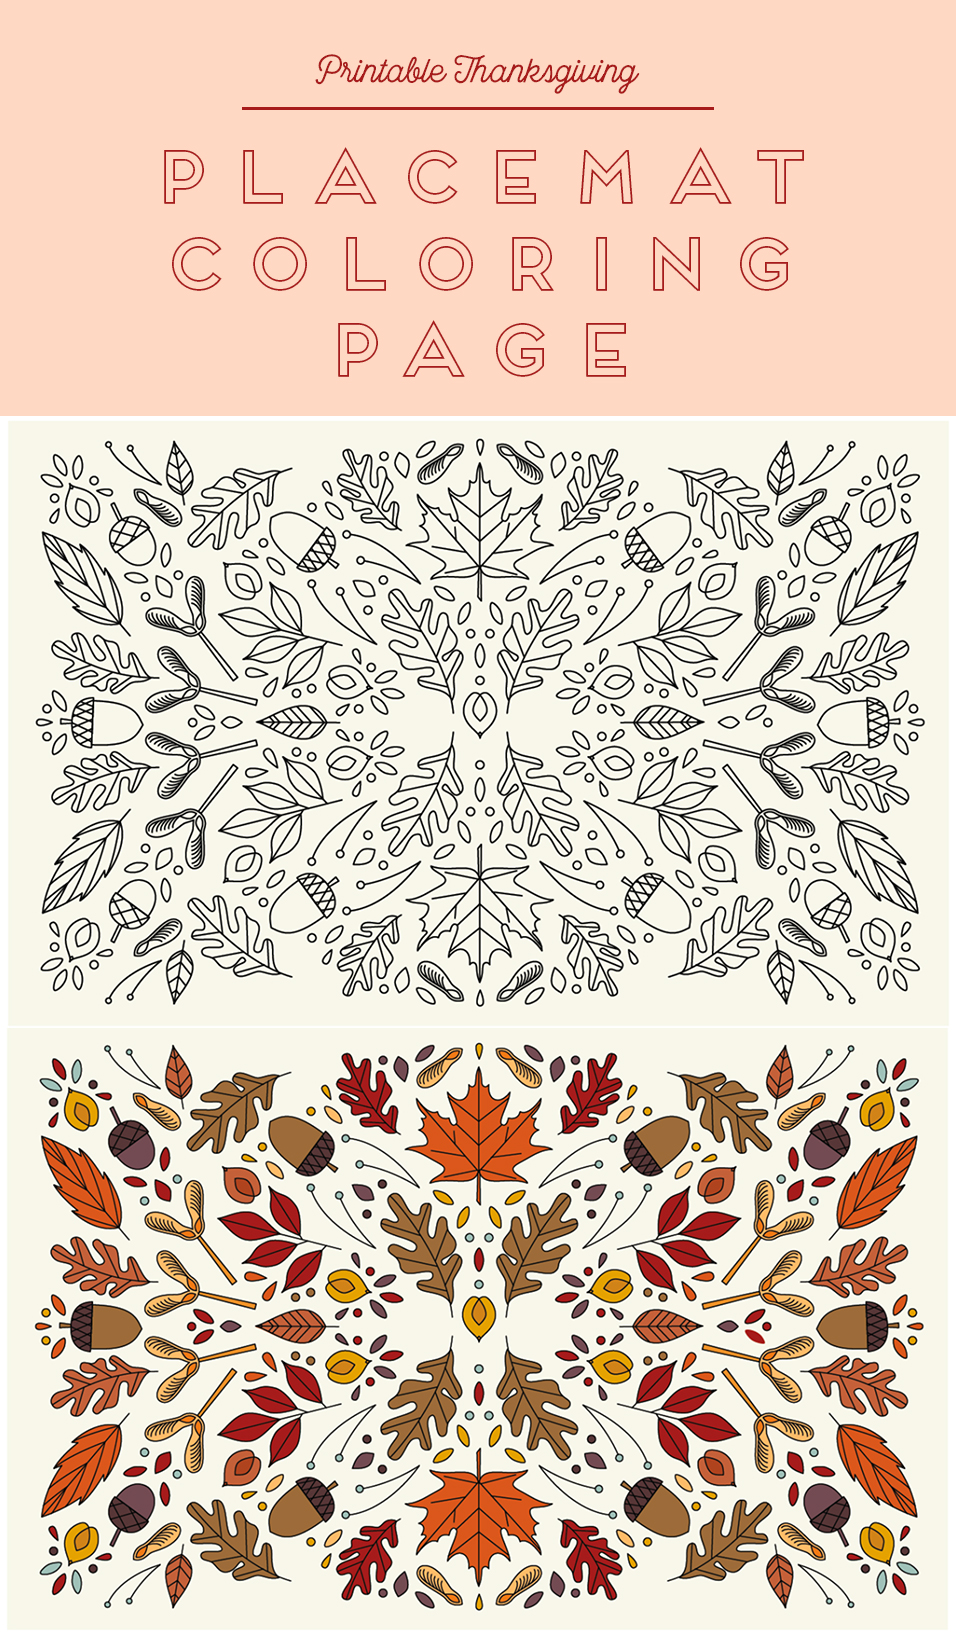 photo regarding Thanksgiving Placemats Printable identified as Printable Coloring Thanksgiving Placemats - The Place That